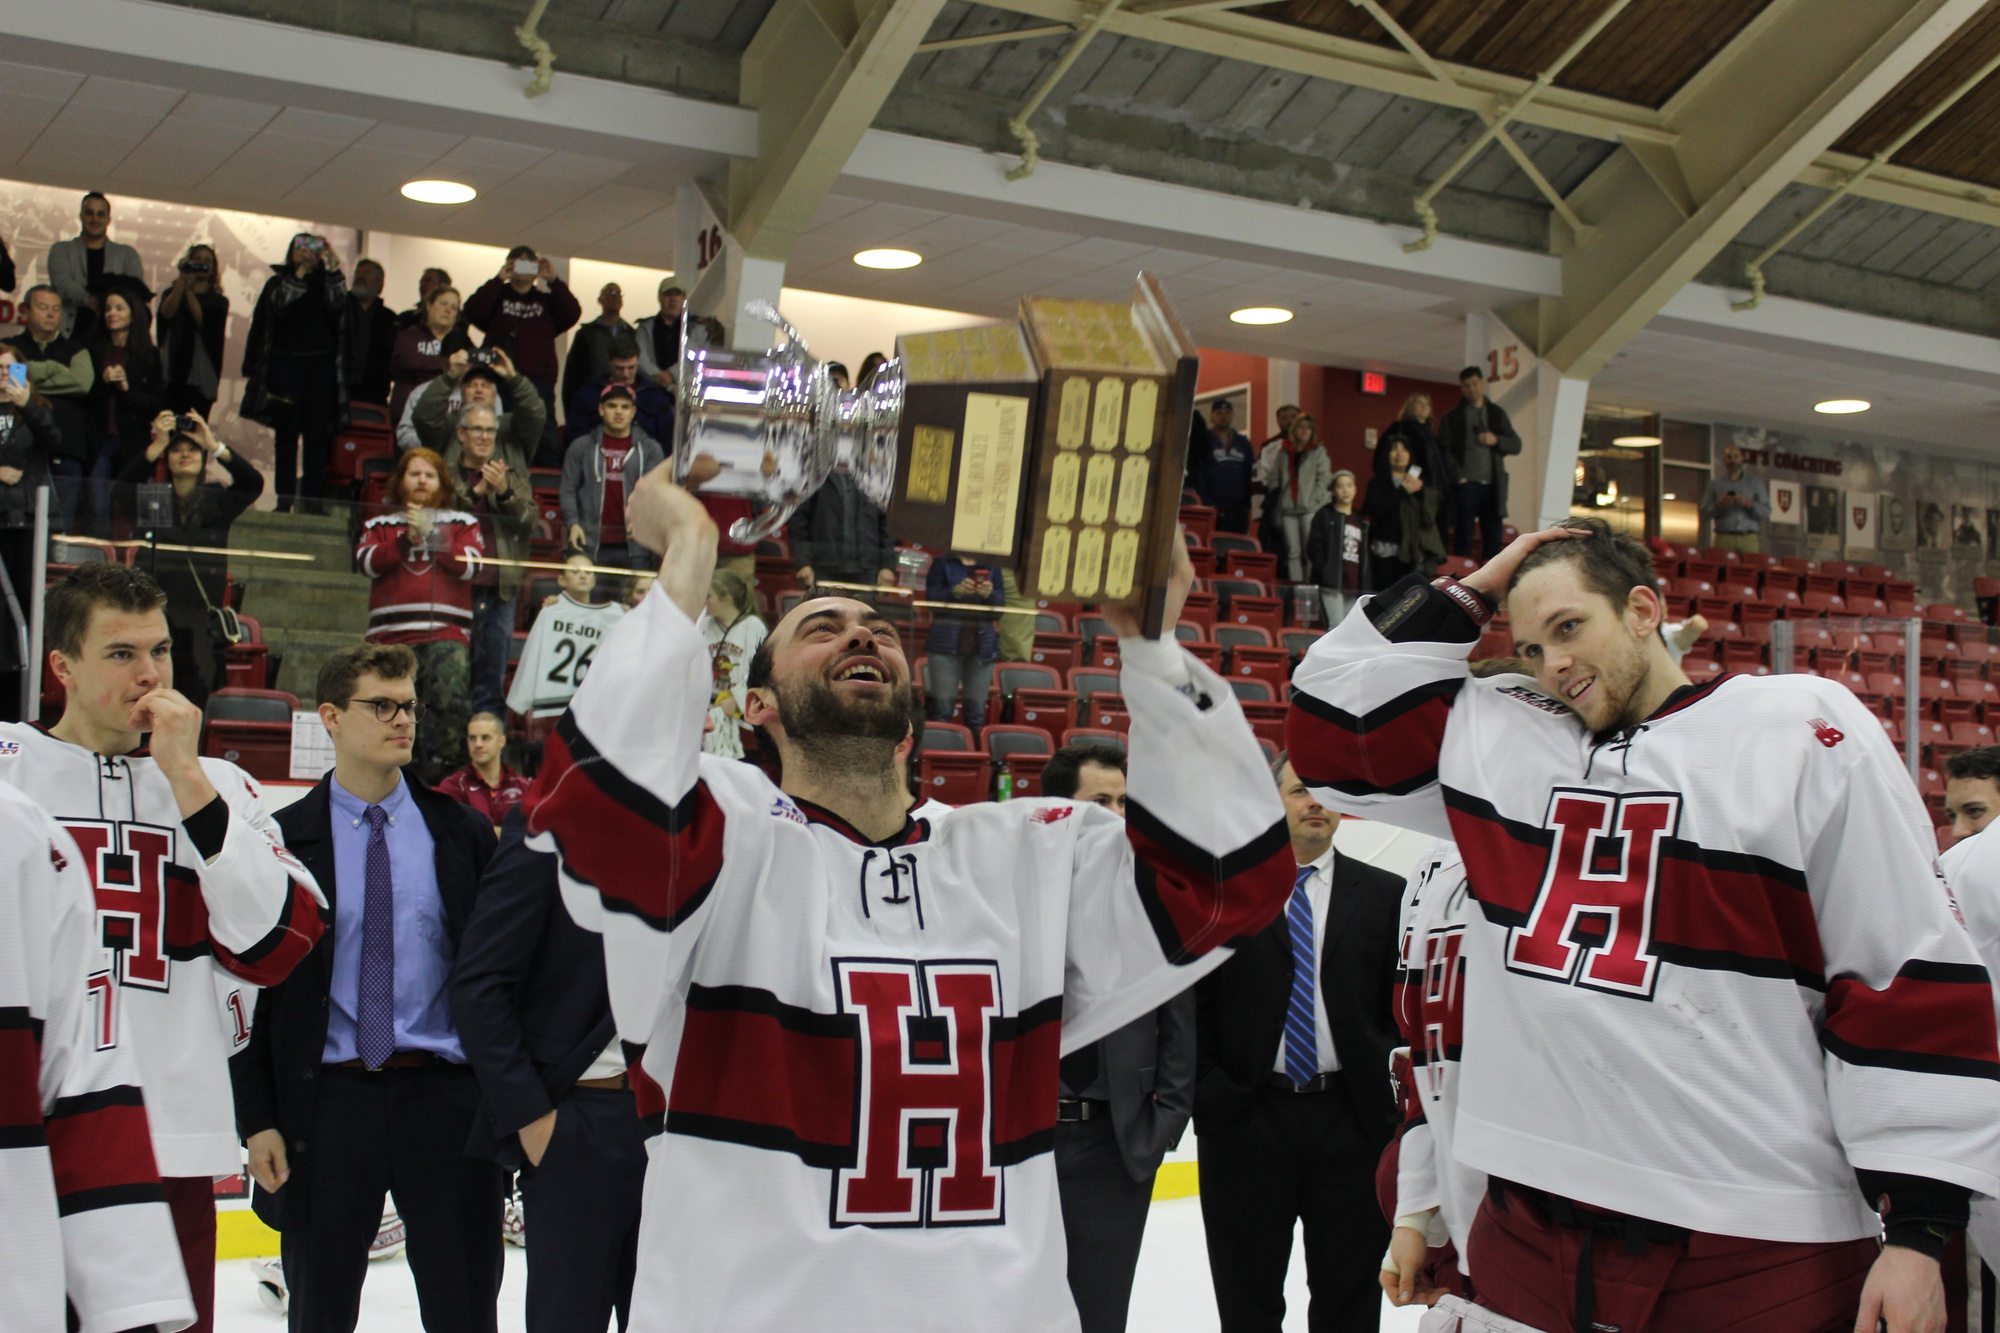 Senior Luke Esposito celebrates with the stand-in Cleary Cup.